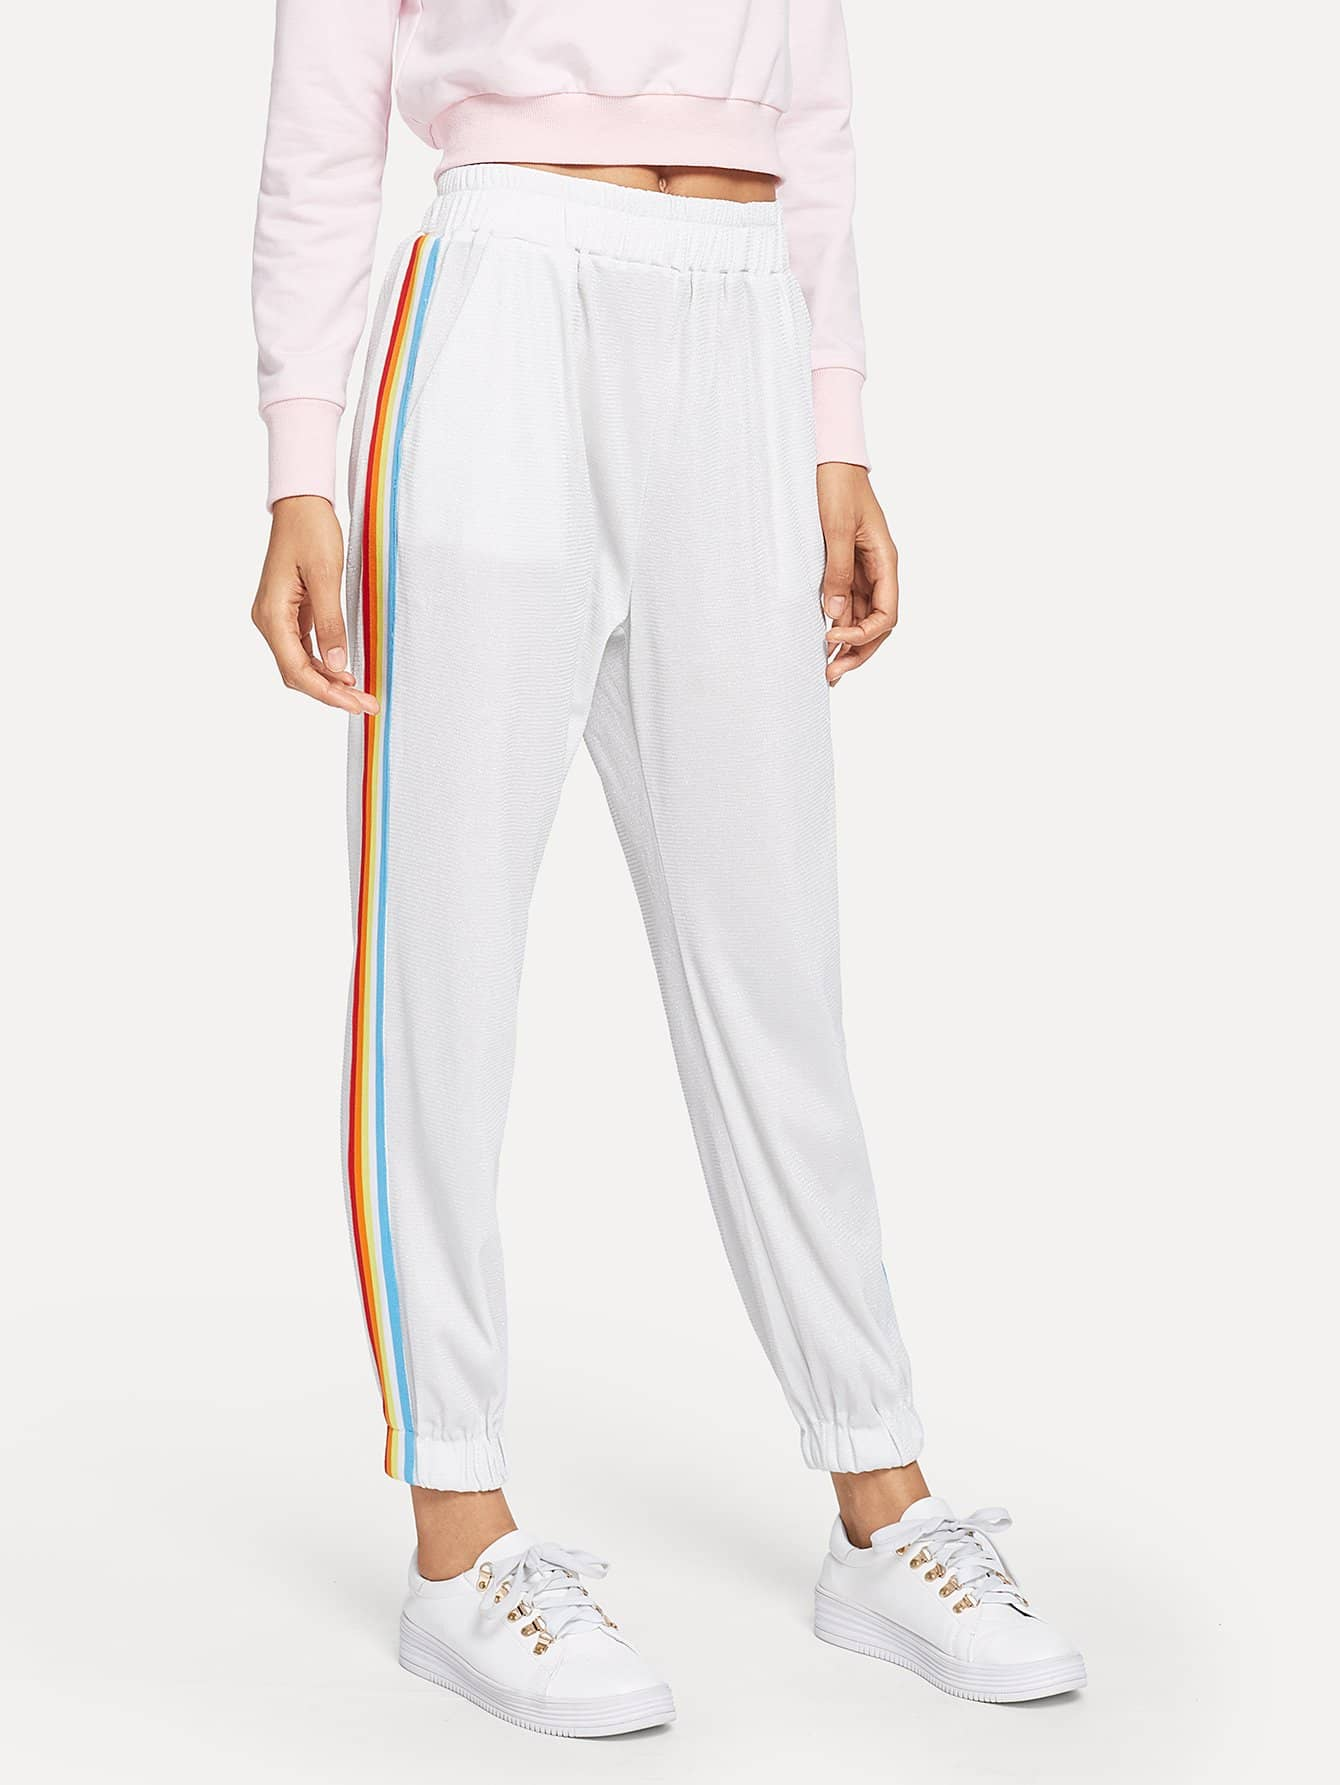 Rainbow Taped Side Pant